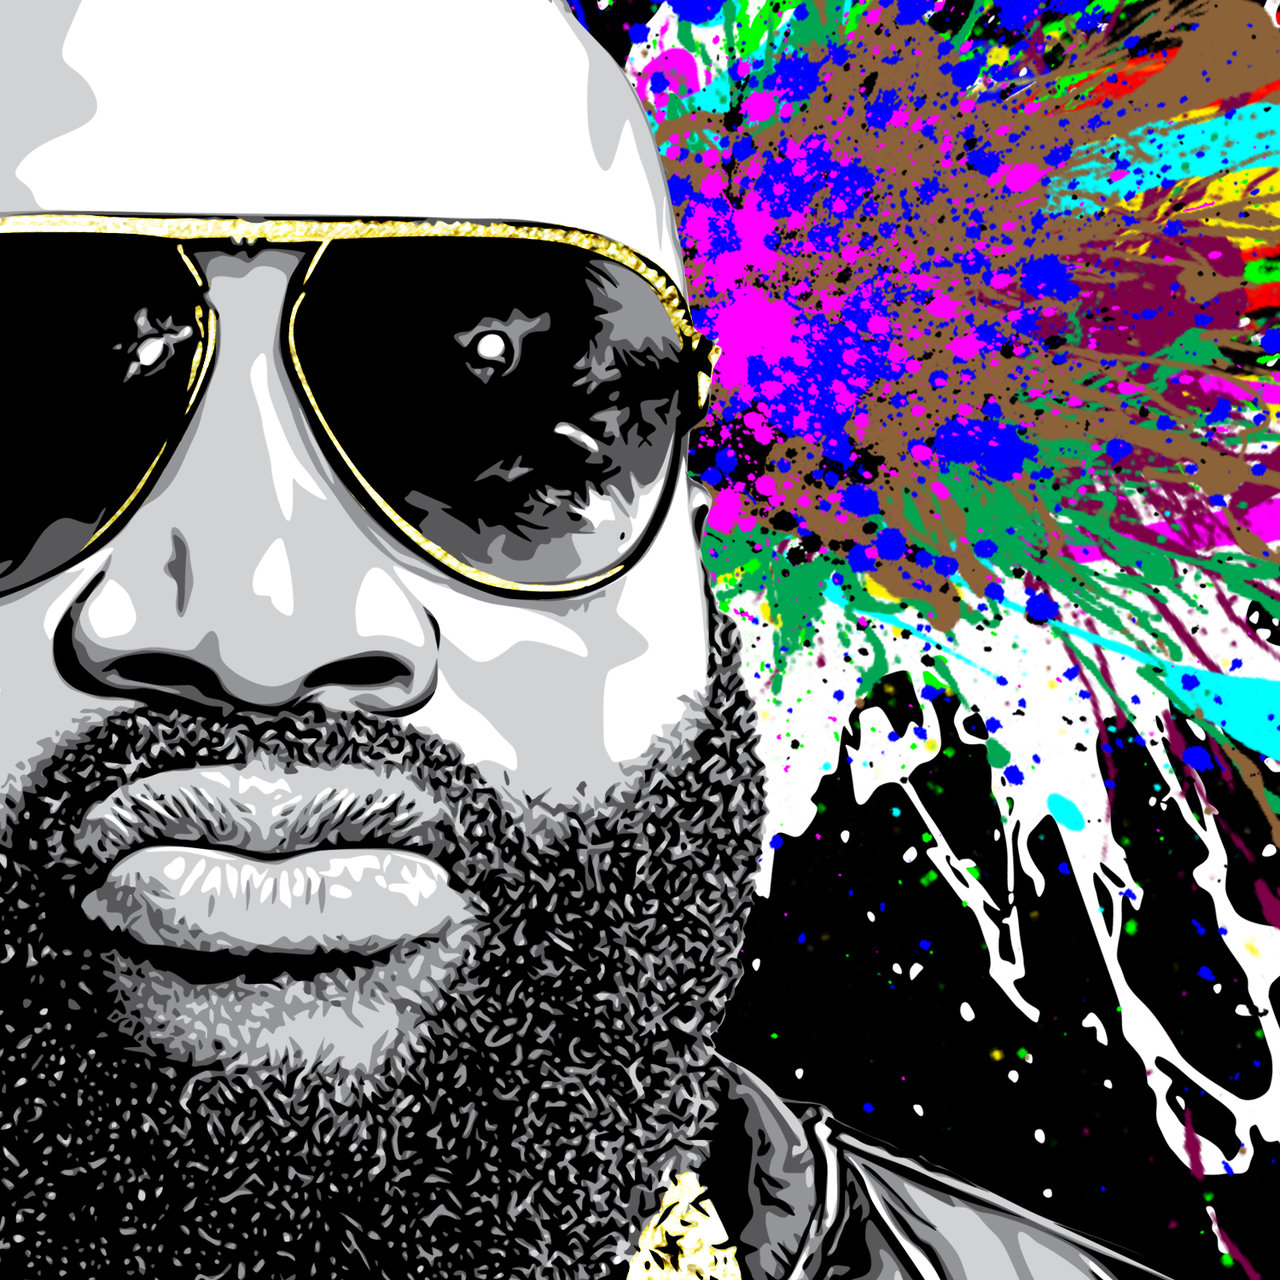 Mastermind (Deluxe Version)